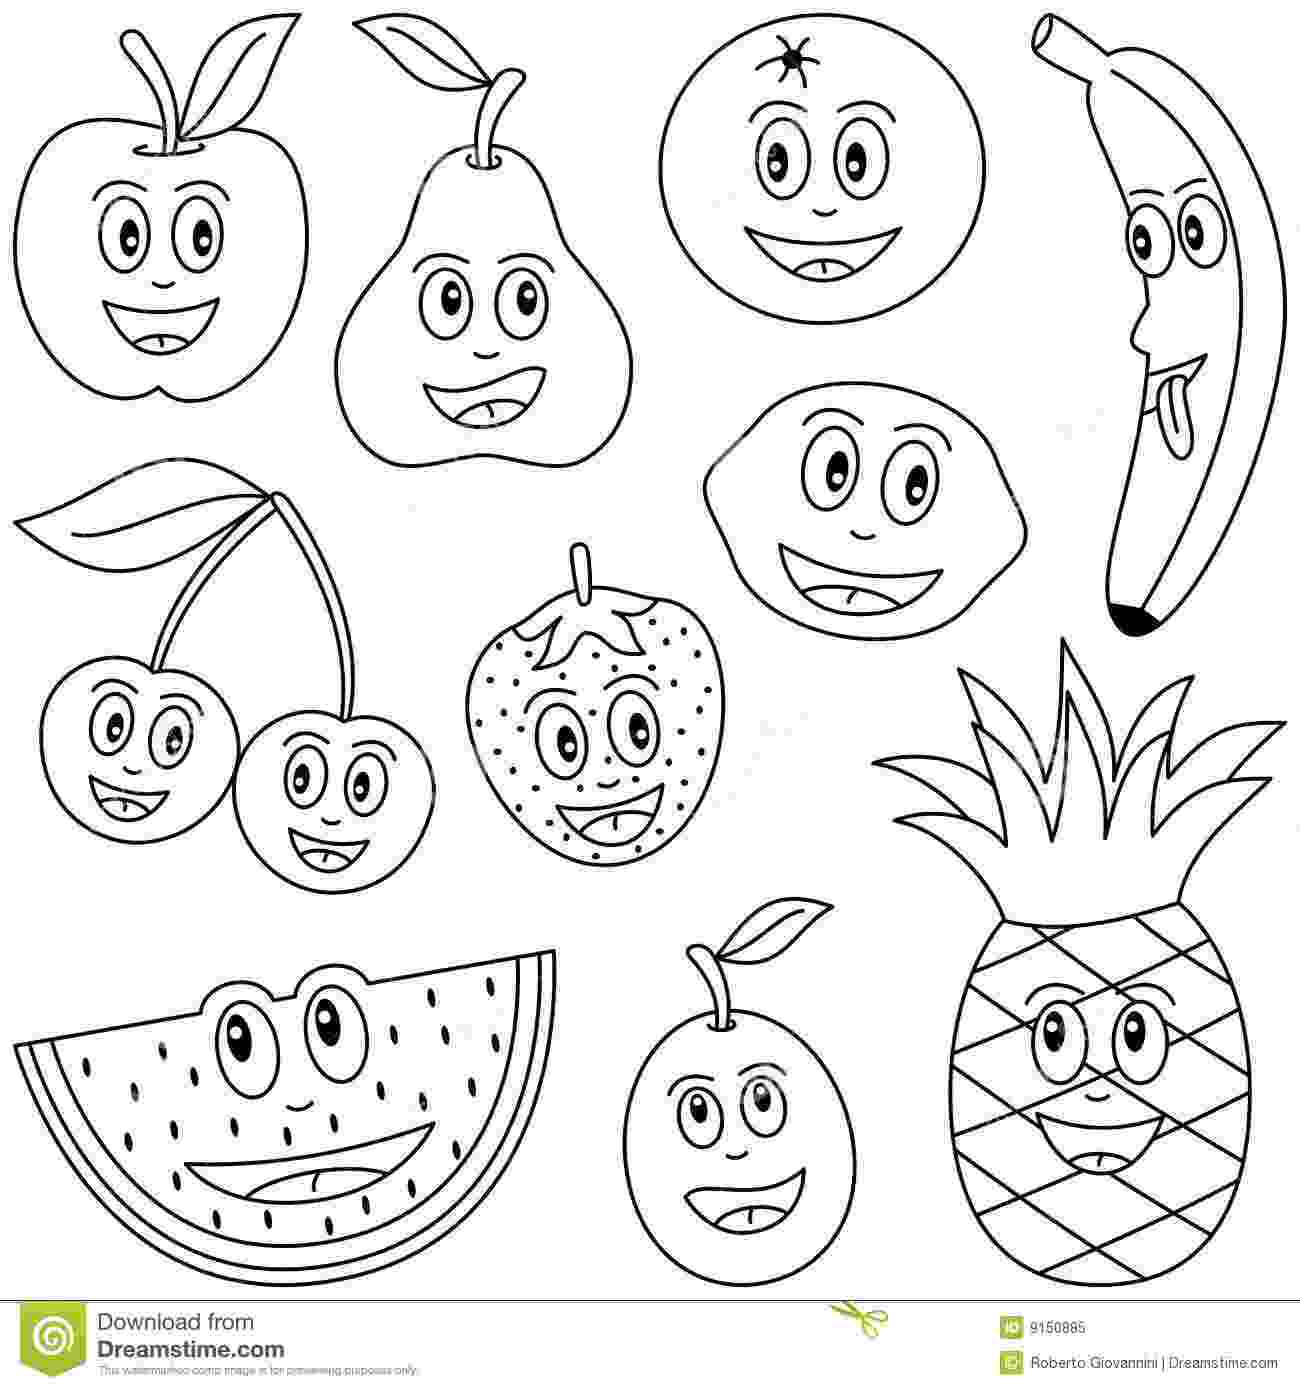 picture of fruits for colouring coloring fruit for kids stock vector illustration of diet for fruits picture colouring of